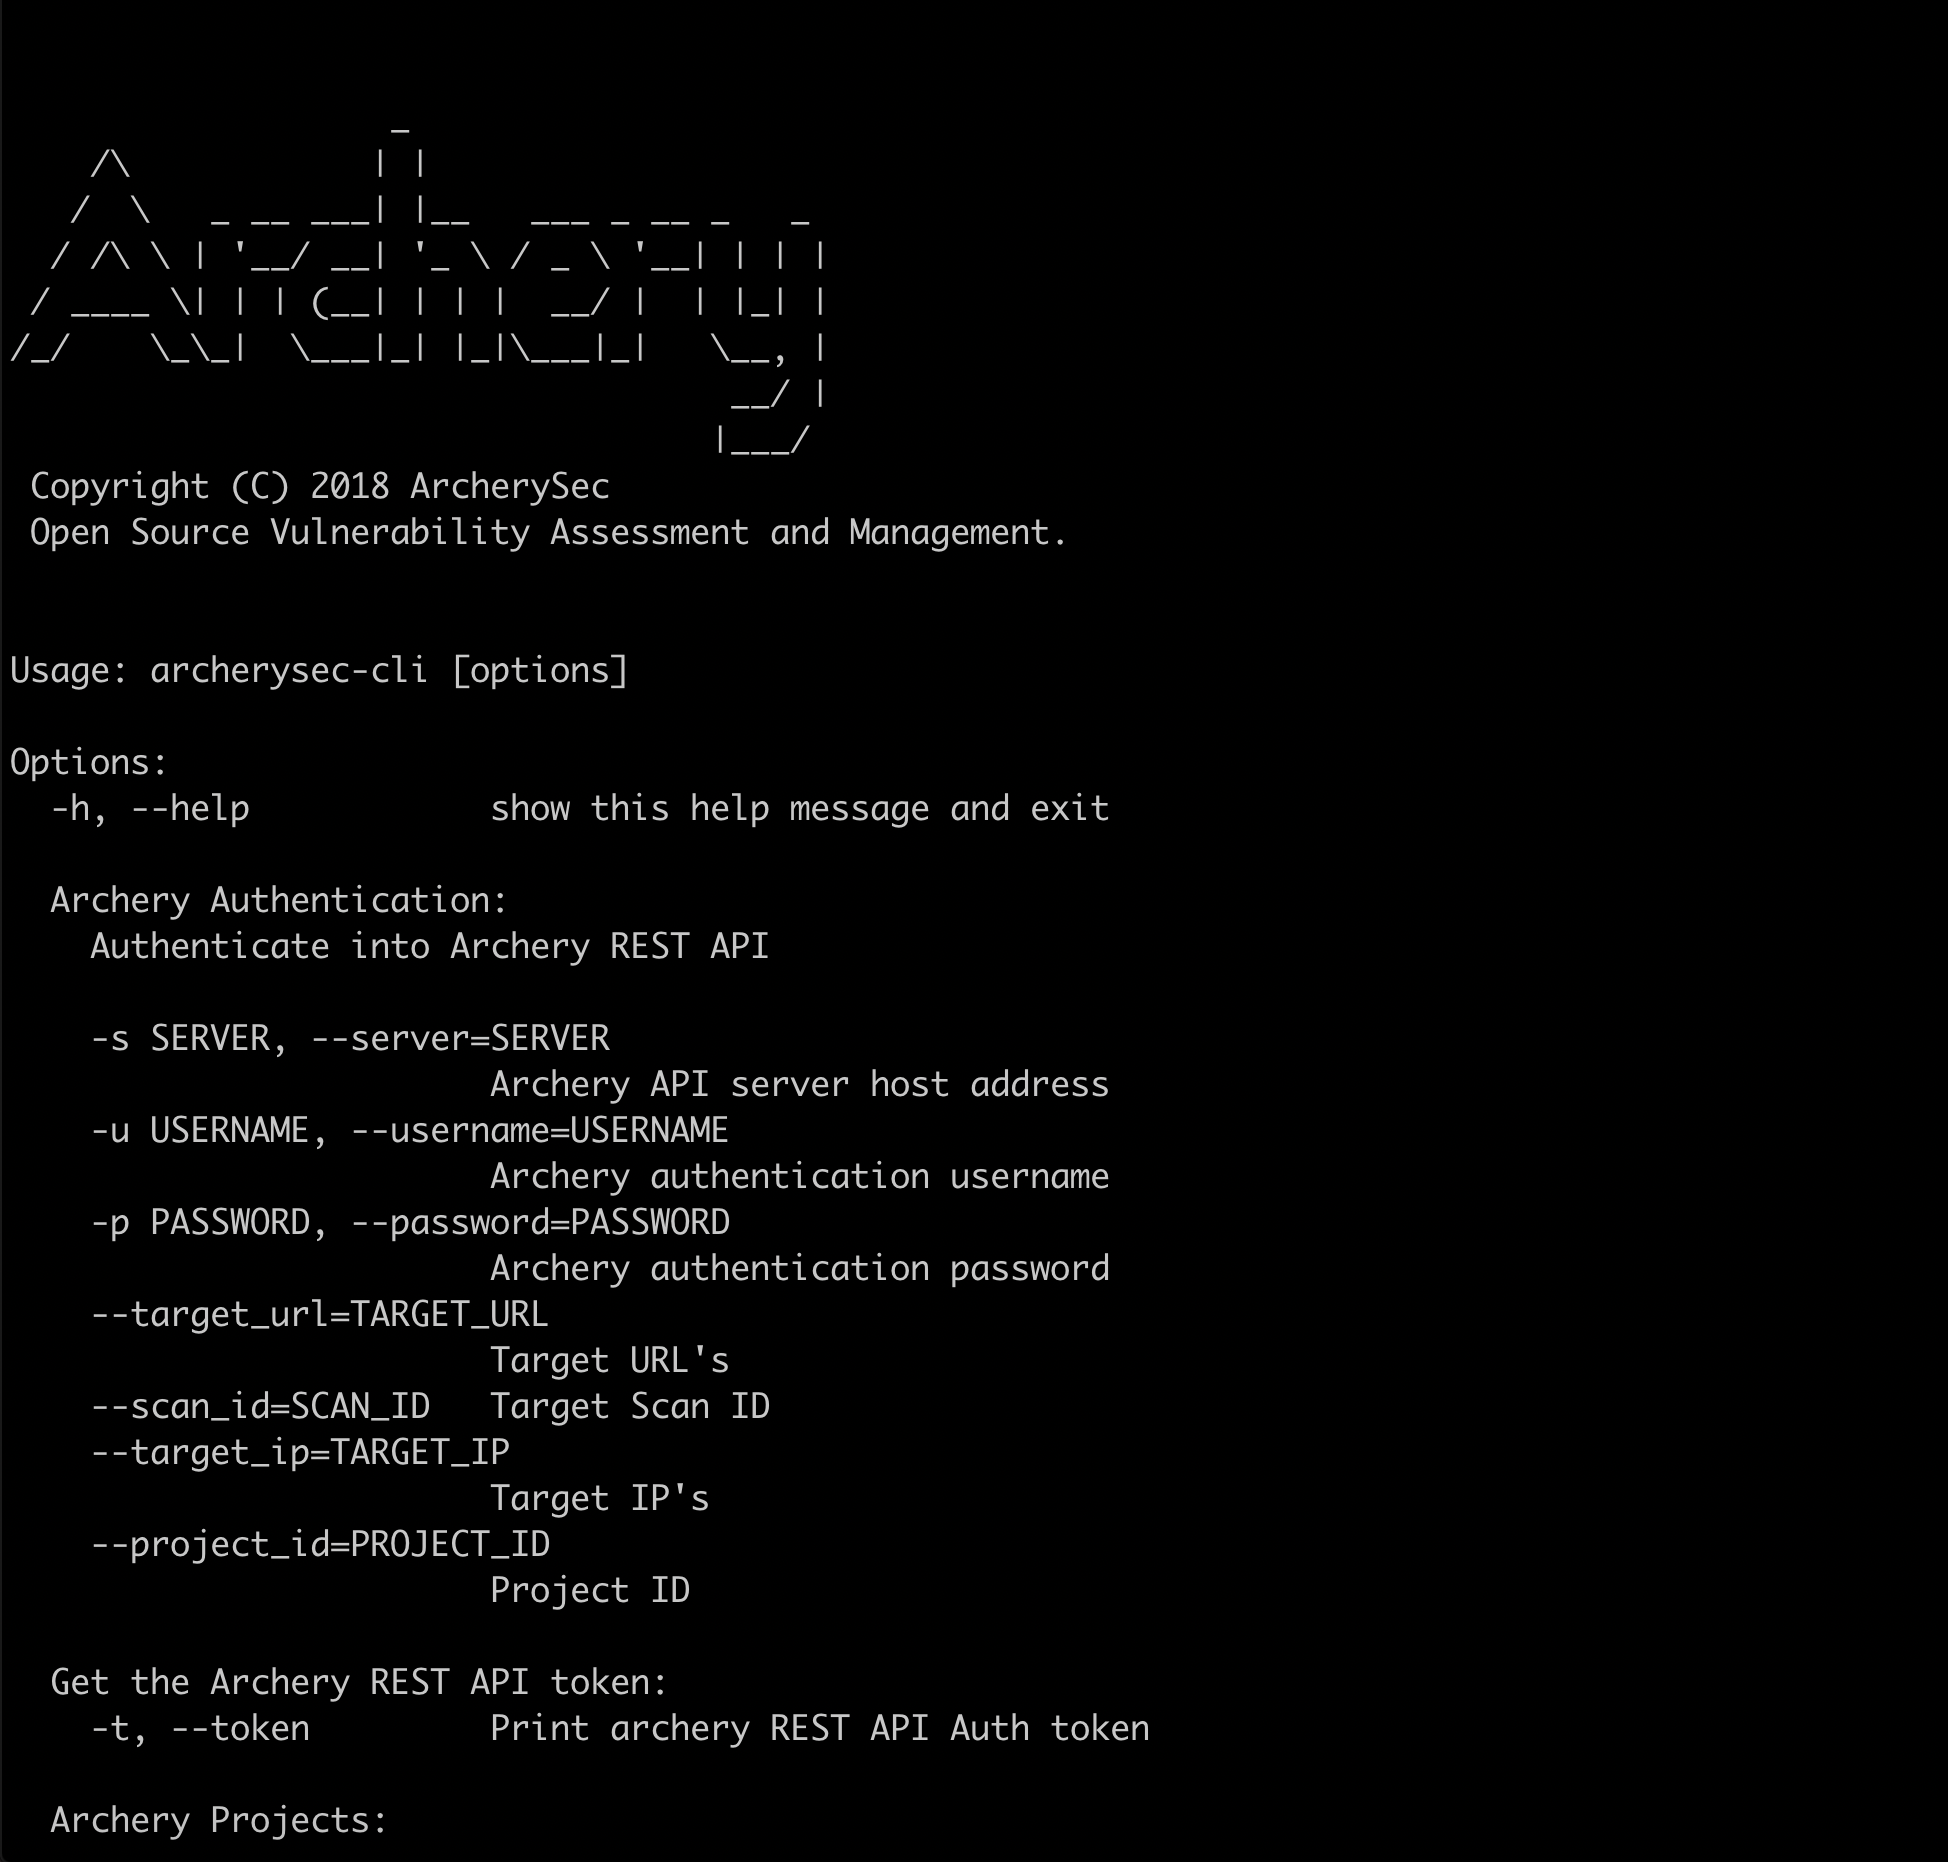 Announcing the First Release of Archery Tool CLI